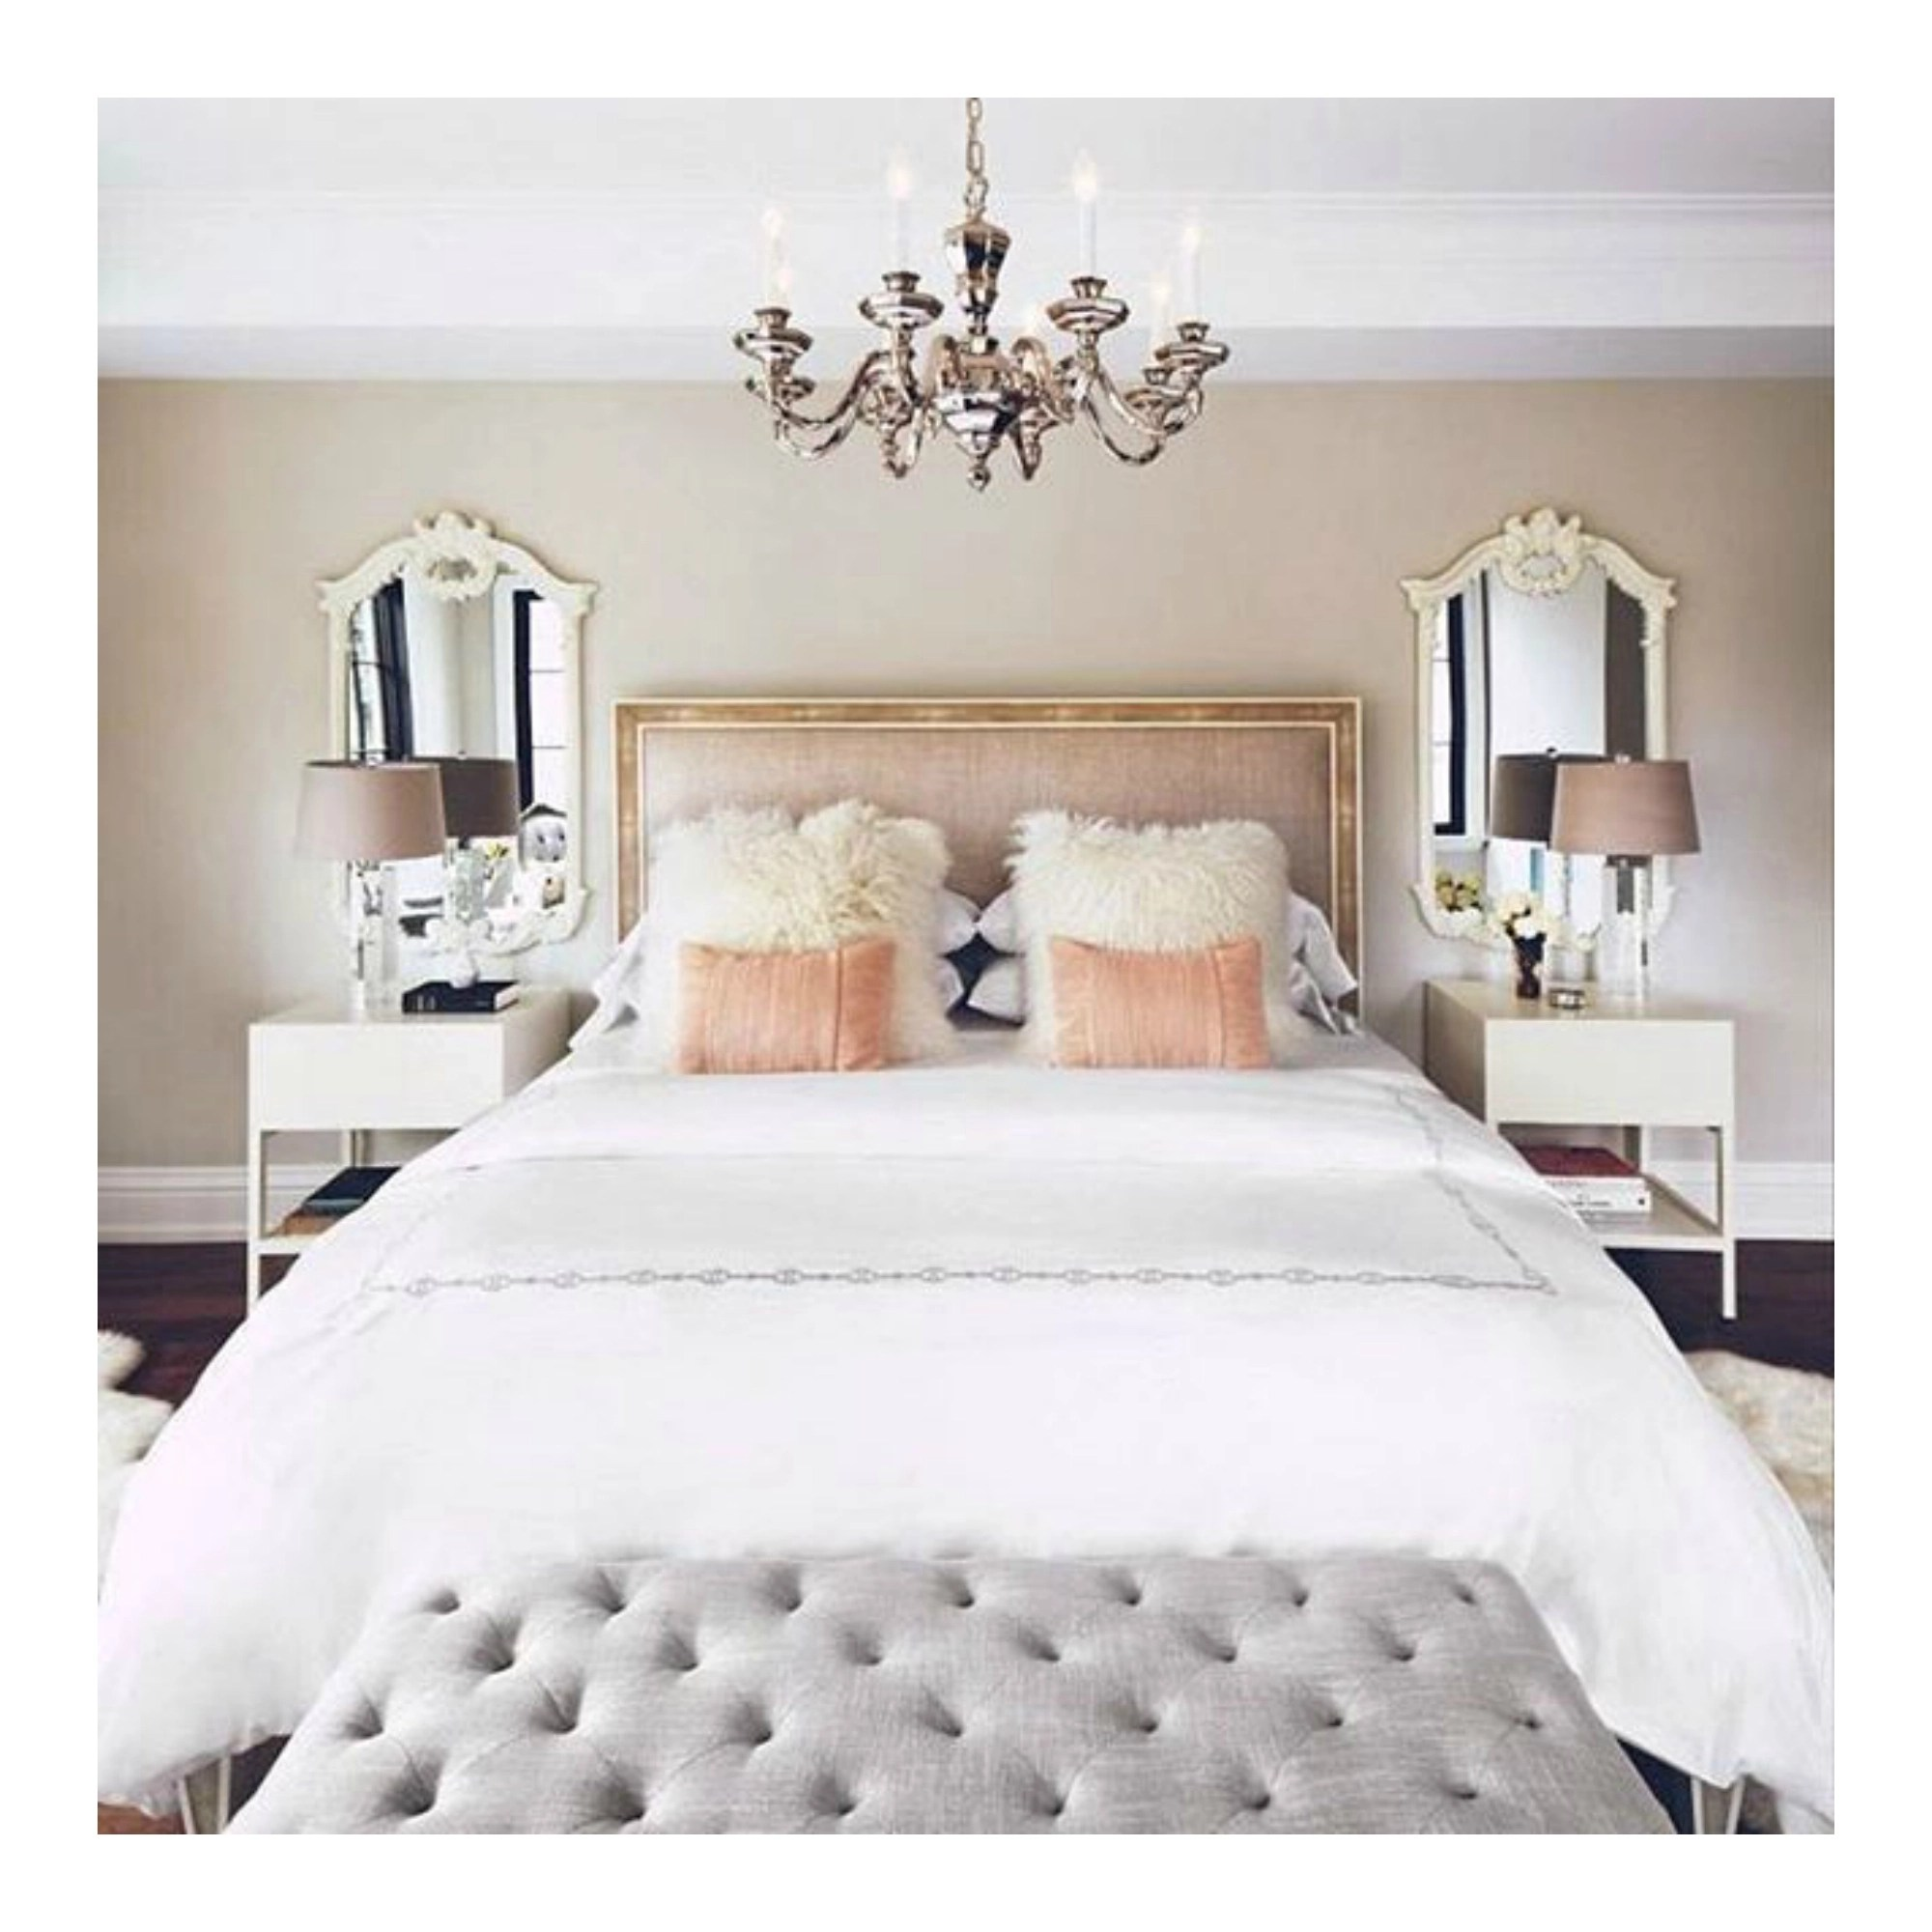 Mirrored Bedside Table Ideas On Foter